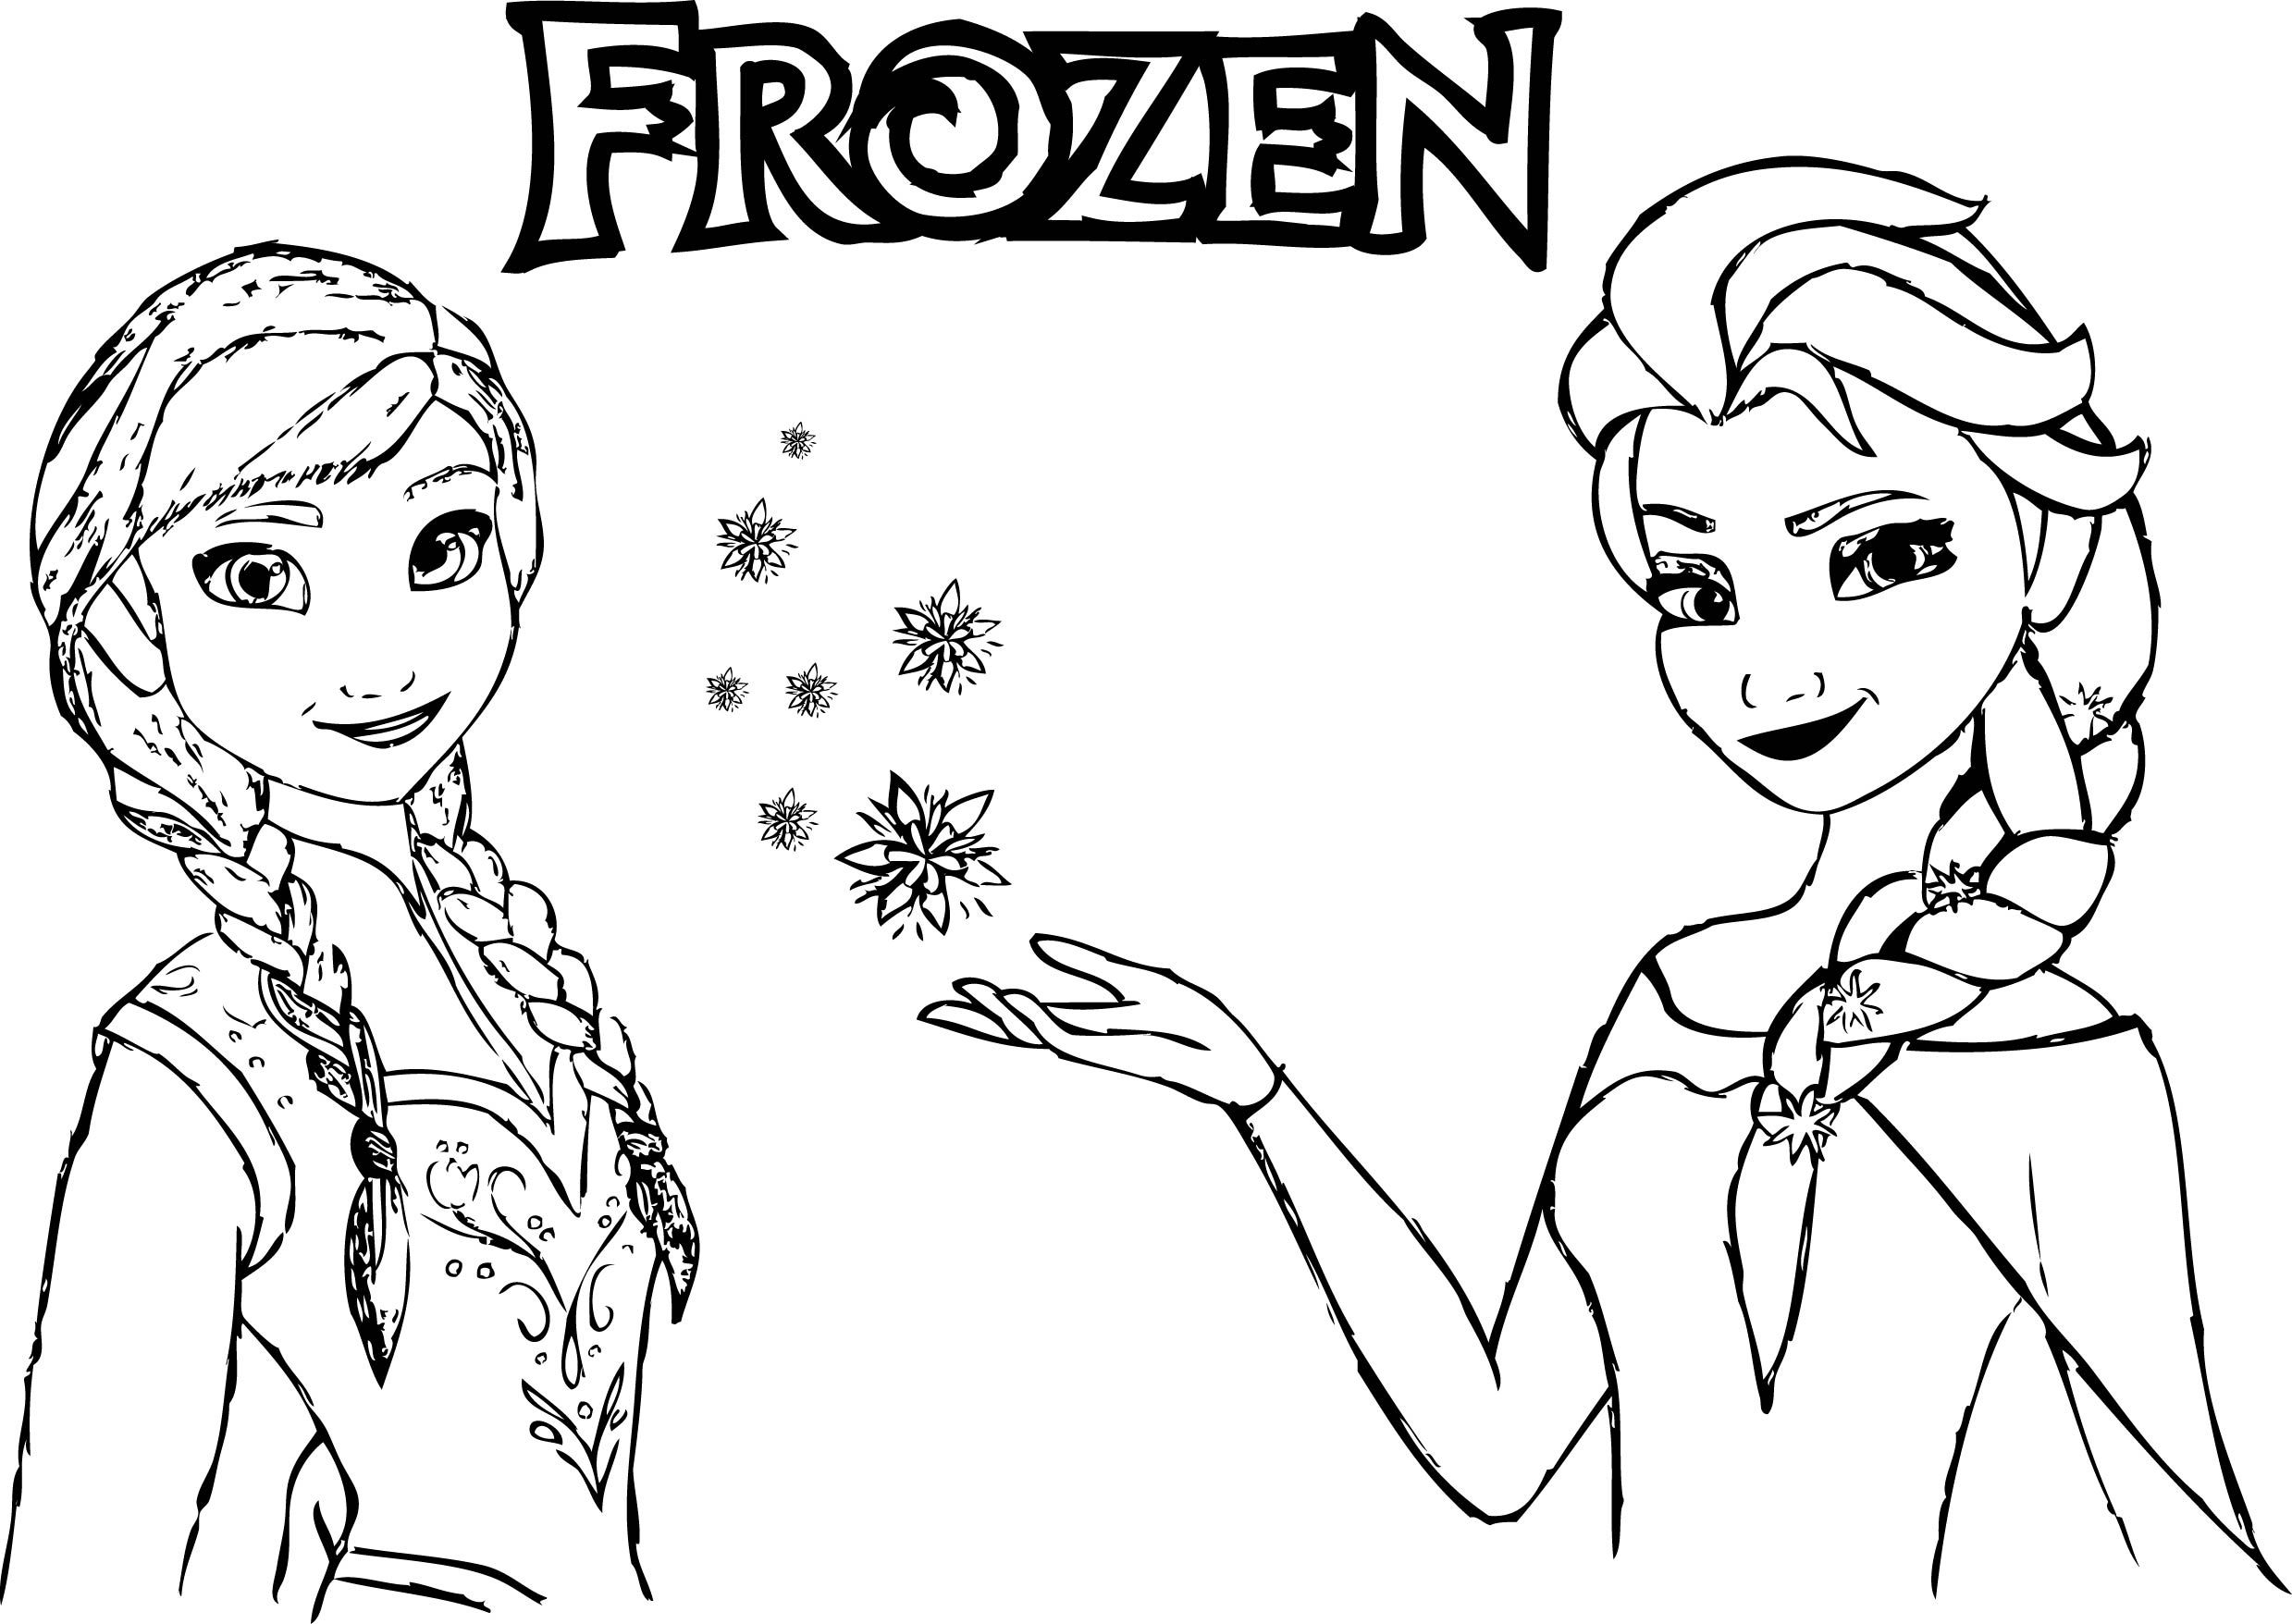 Frozen Drawing Anna And Elsa at GetDrawings | Free download